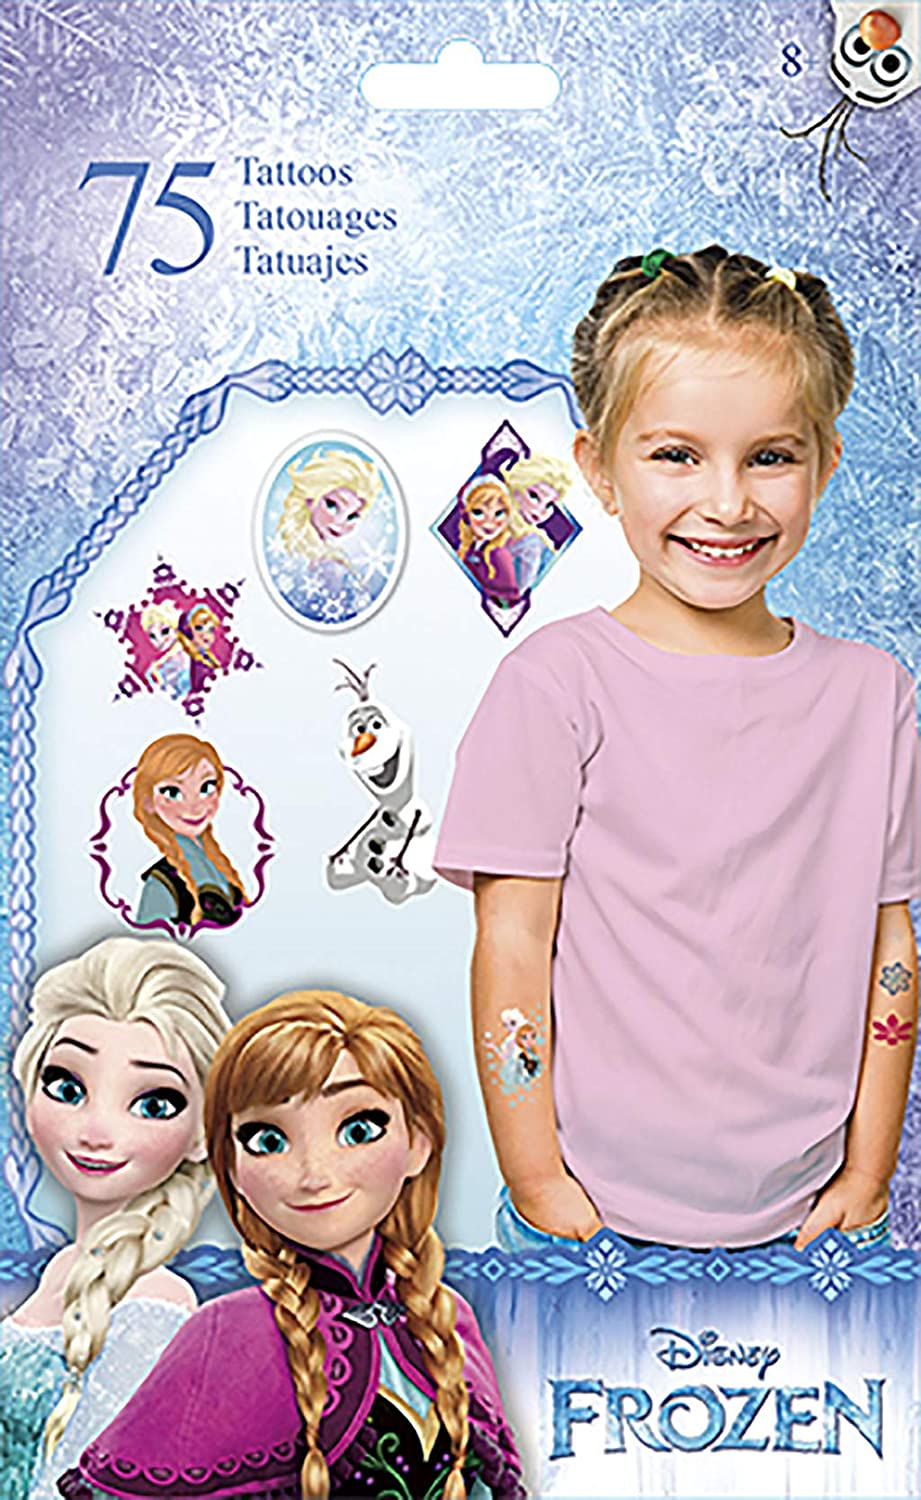 Disney Frozen Temporary Tattoos: Amazon.es: Juguetes y juegos